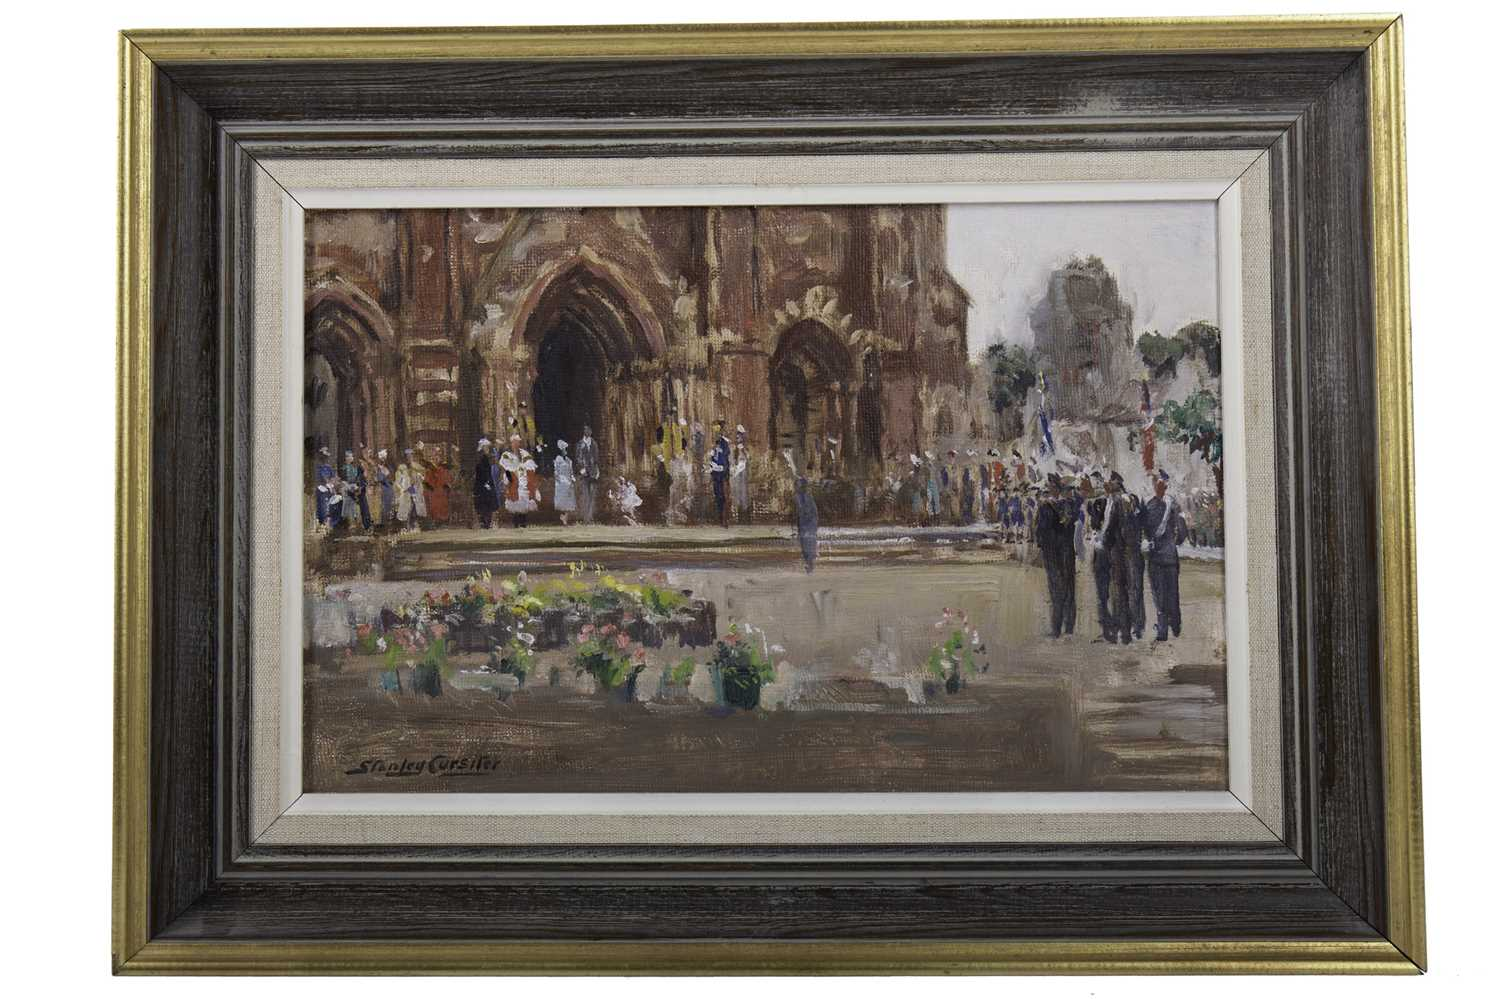 Lot 2018 - A BOUQUET FOR HER MAJESTY, AN OIL BY STANLEY CURSITER